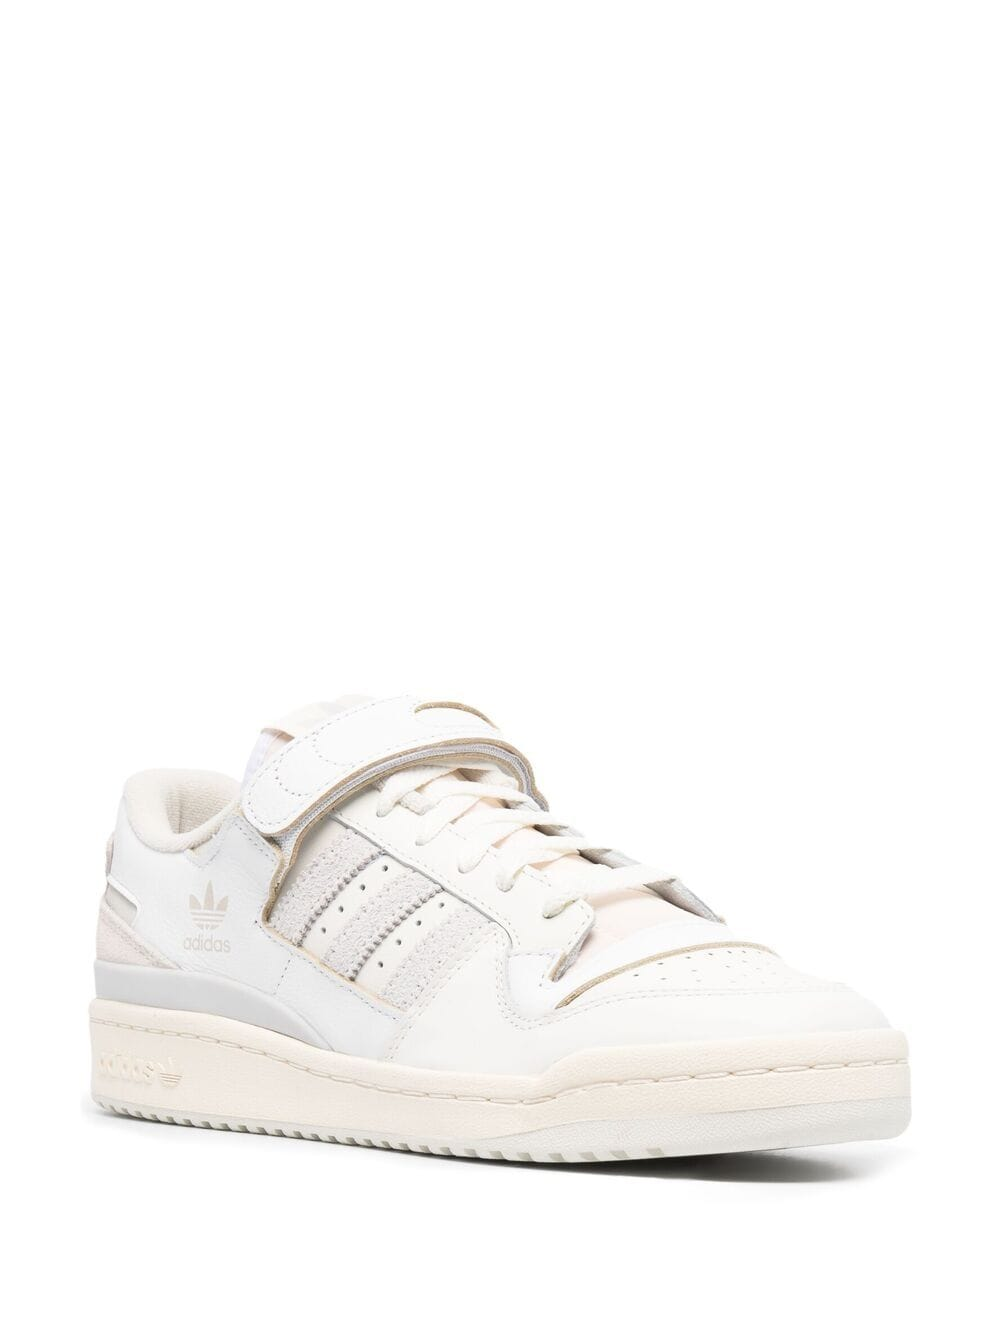 Adidas forum 84 sneakers man white ADIDAS | Sneakers | FY4577GREY ONE